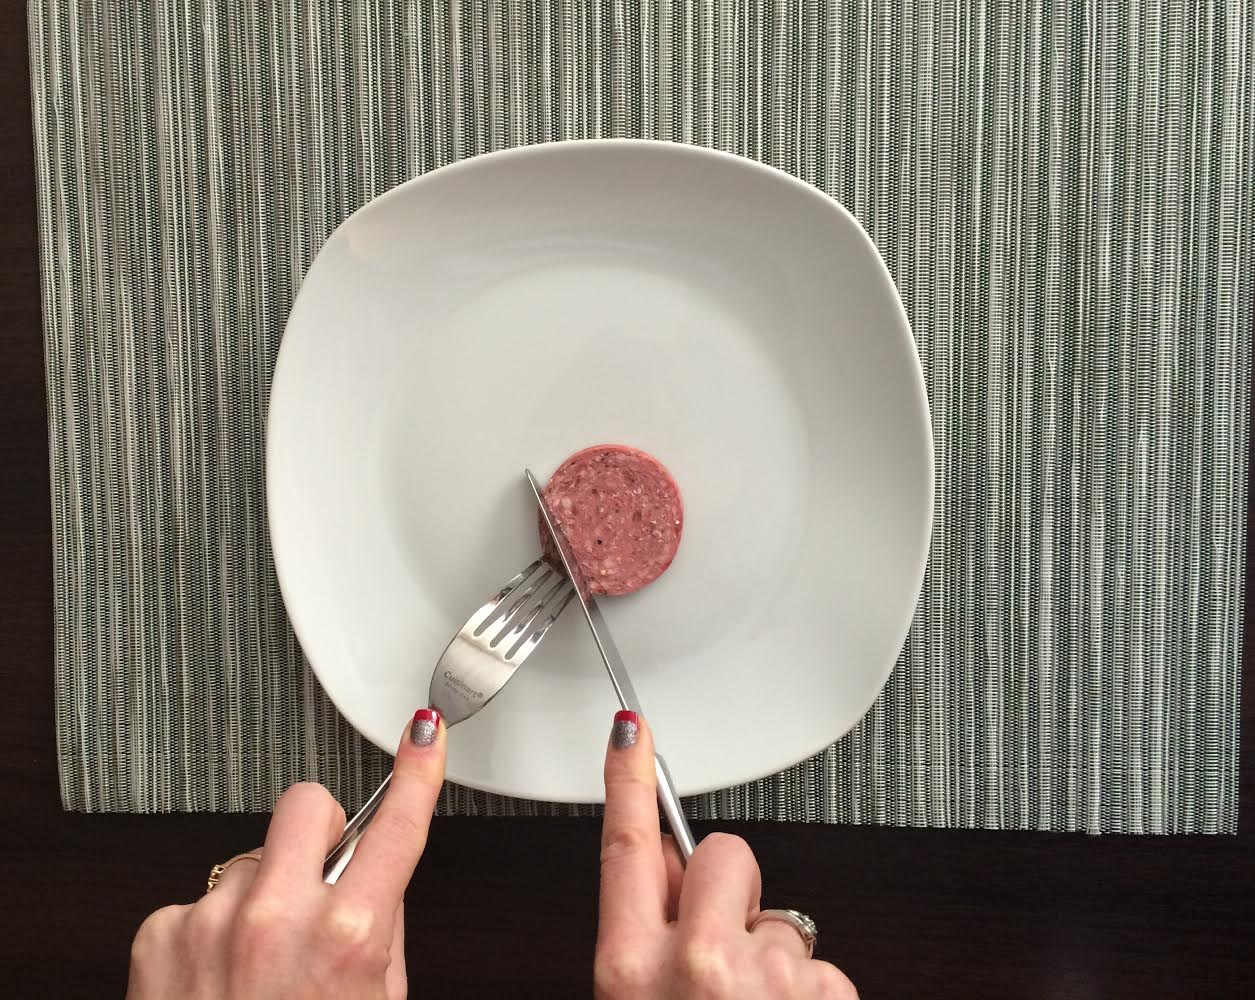 How to cut your food to eat it